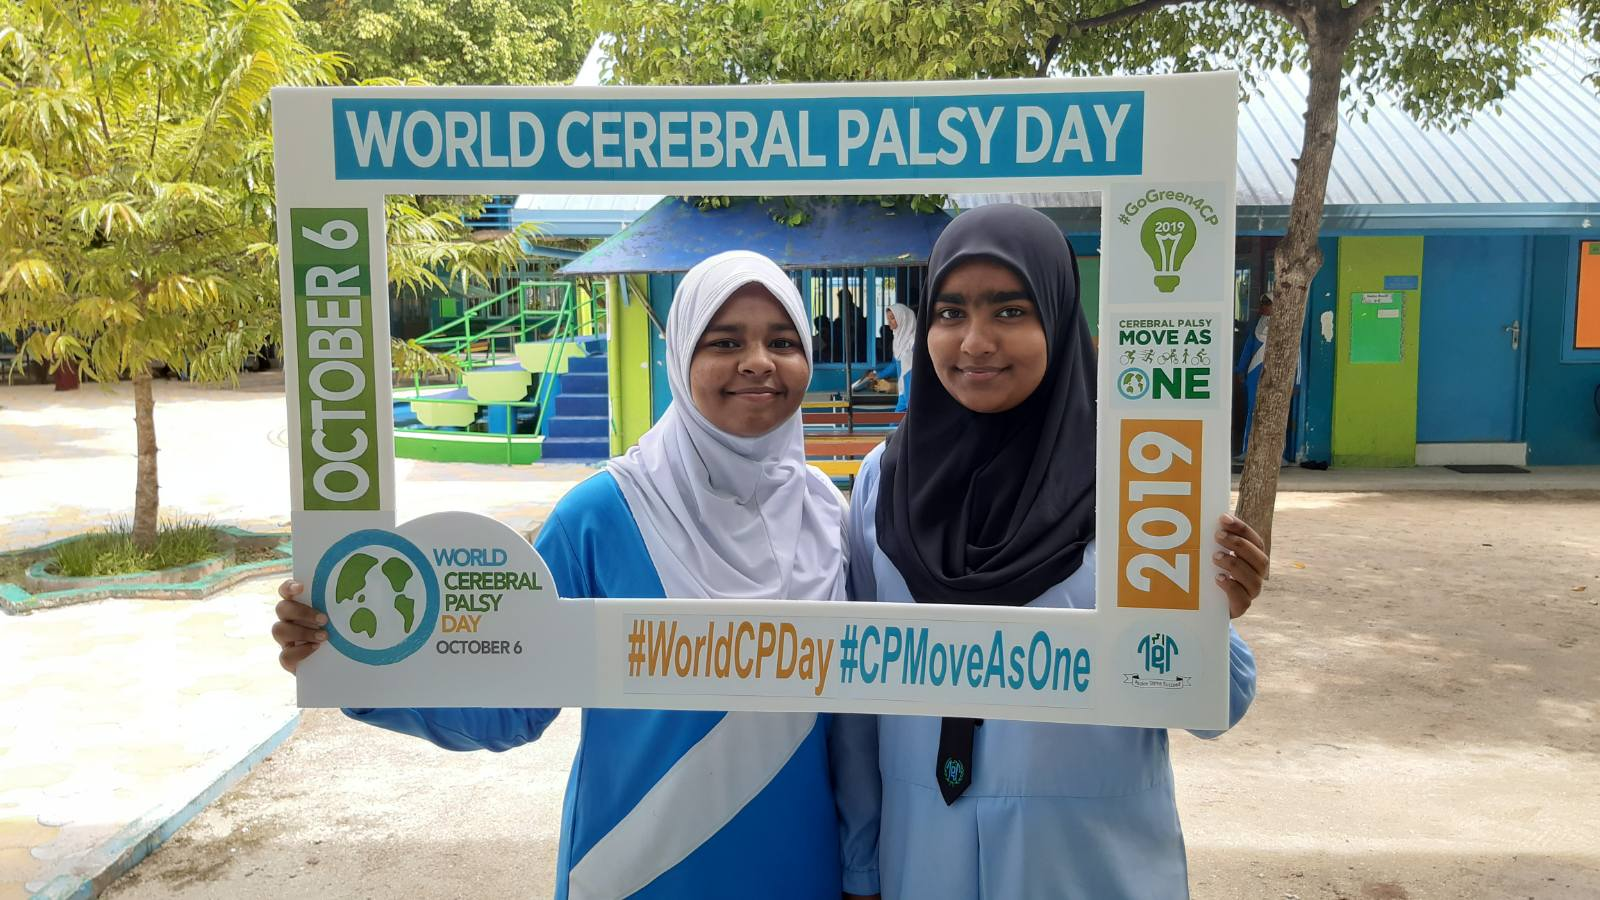 World Cerebral Palsy Day Wishes Lovely Pics